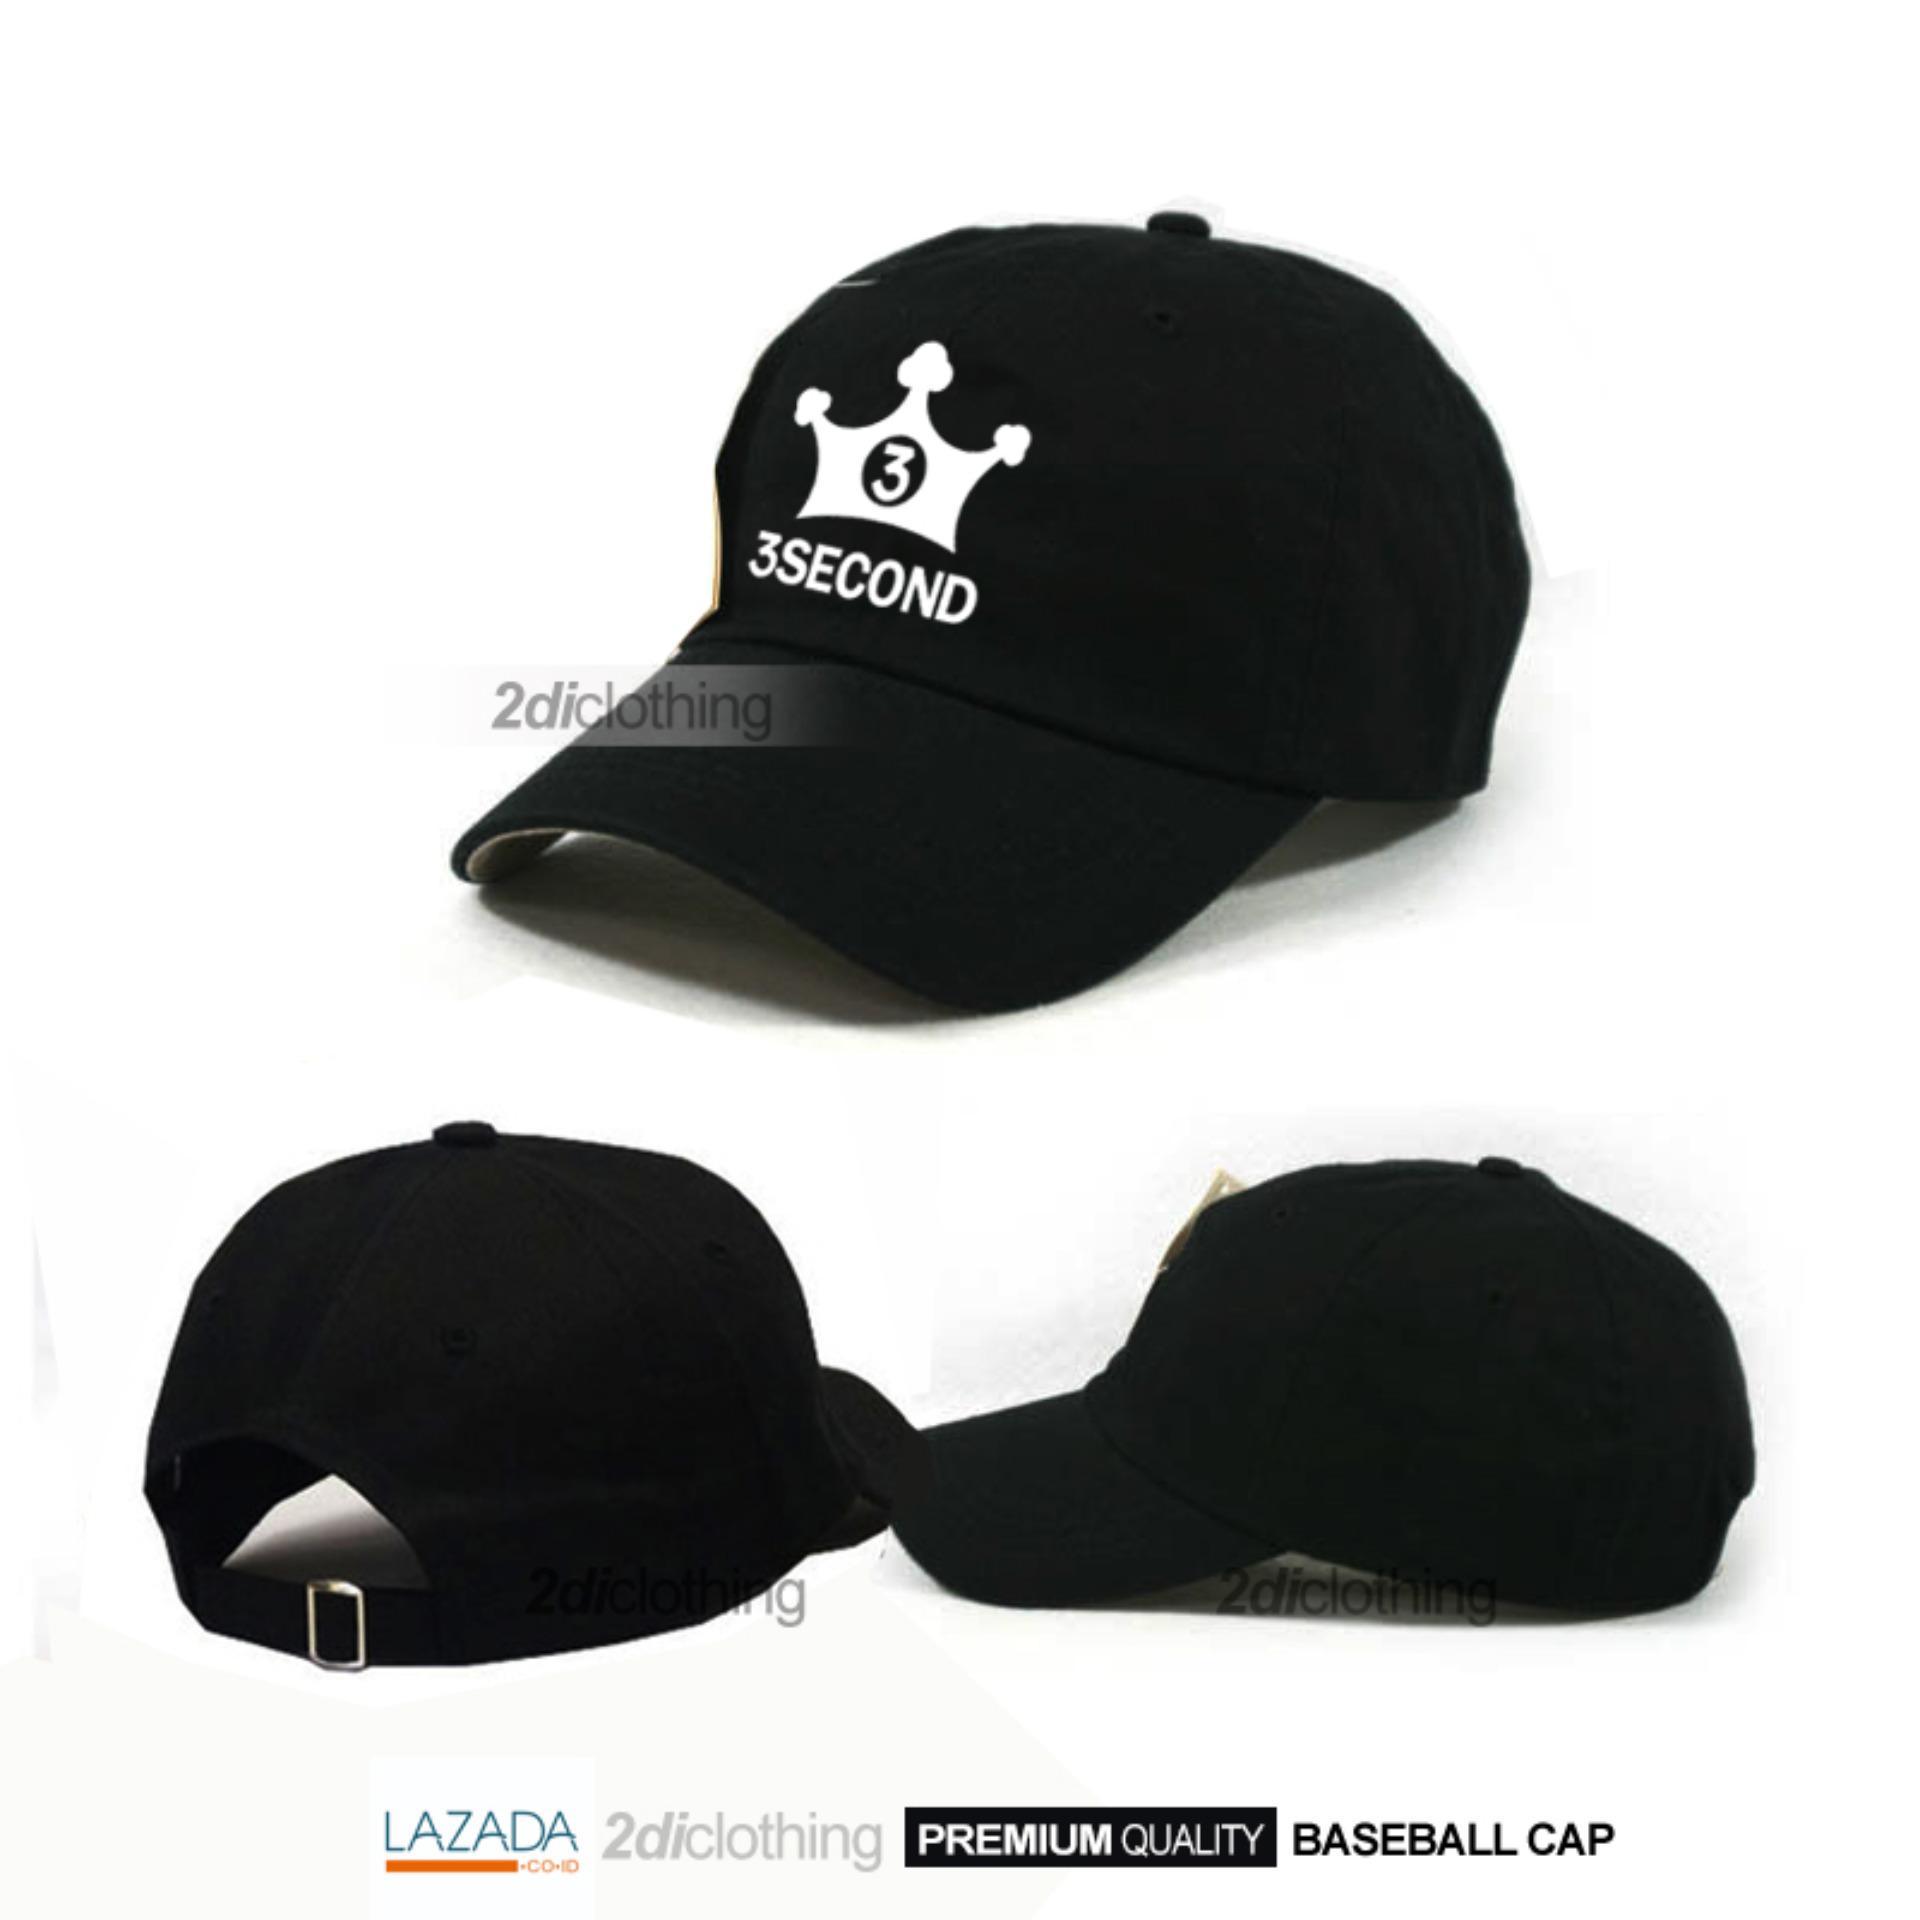 Topi distro 3second baseball black premium